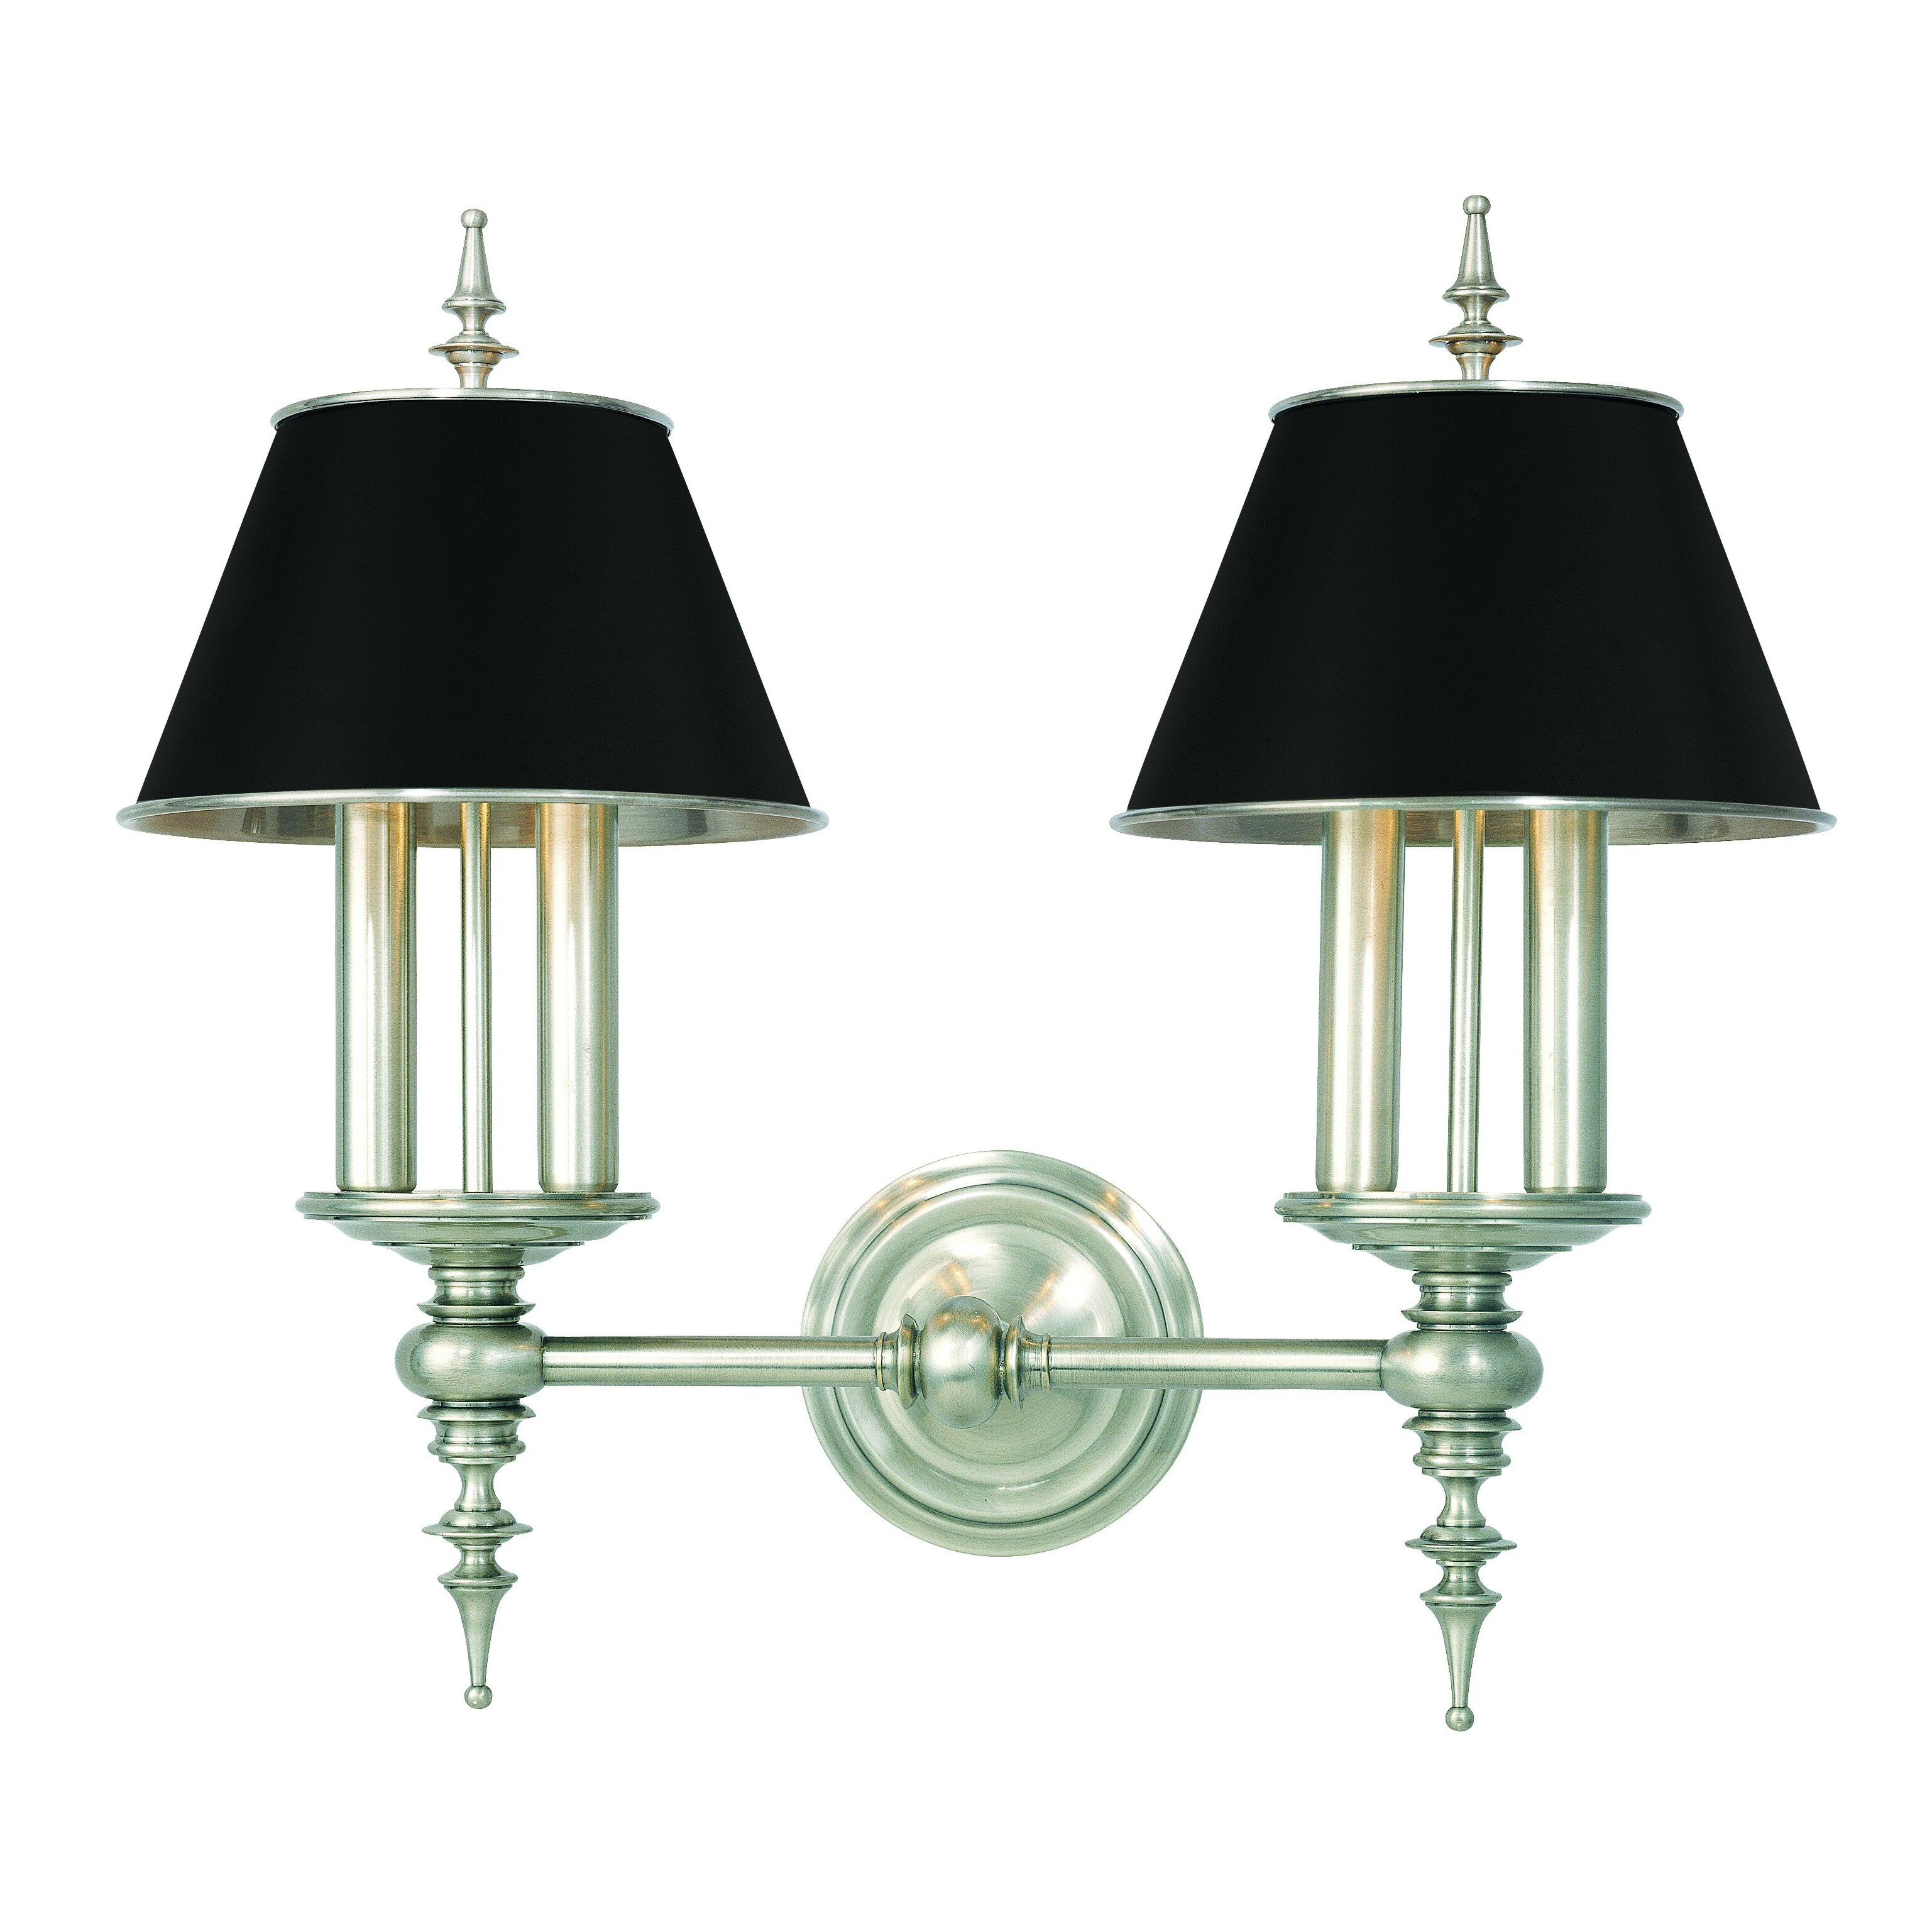 Lighting Shop Sale Cheshire: Hudson Valley Lighting Cheshire 4 Light Wall Sconce